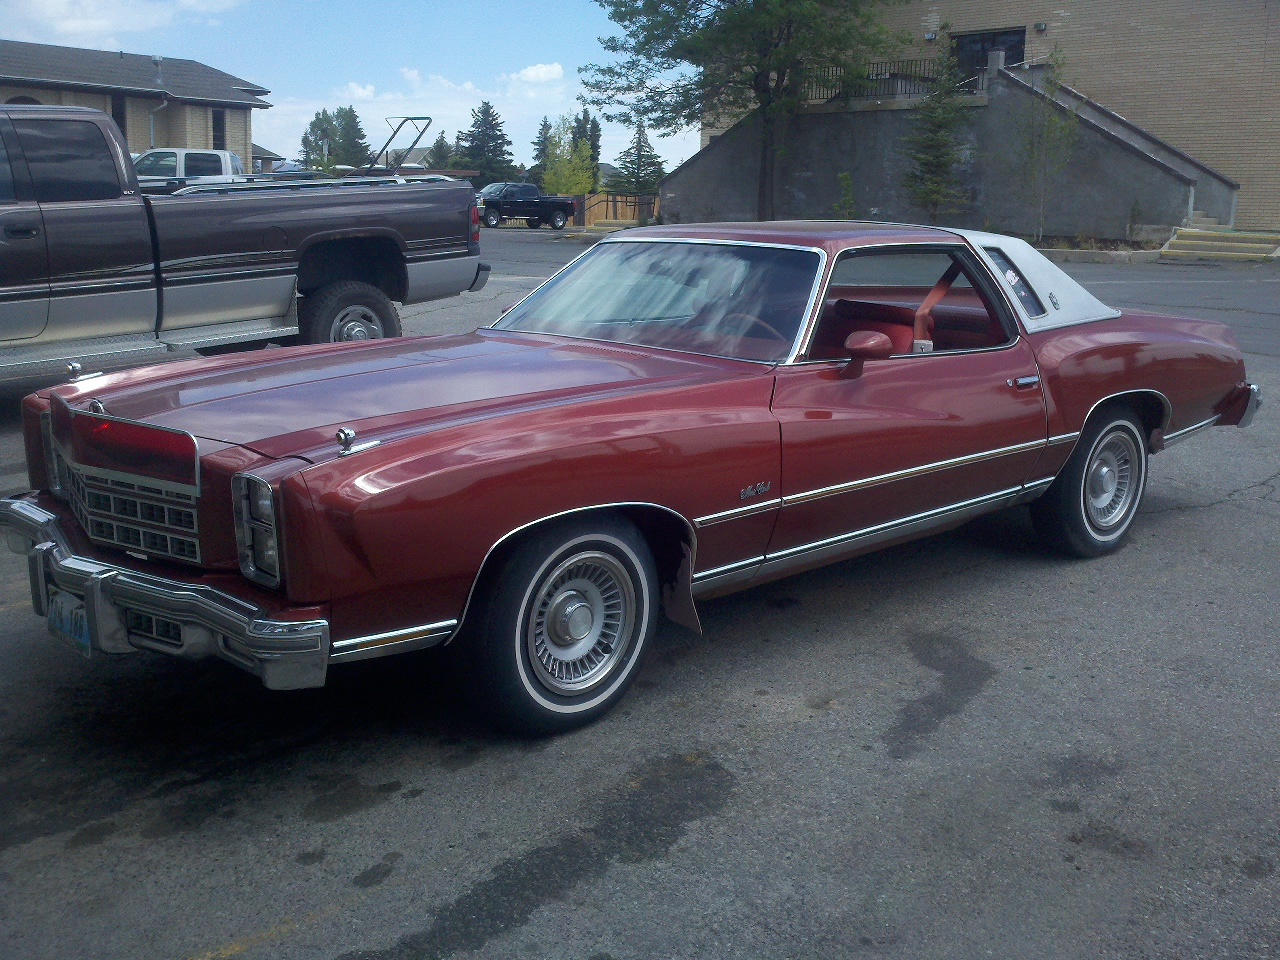 1977 Chevy Monte Carlo Ss